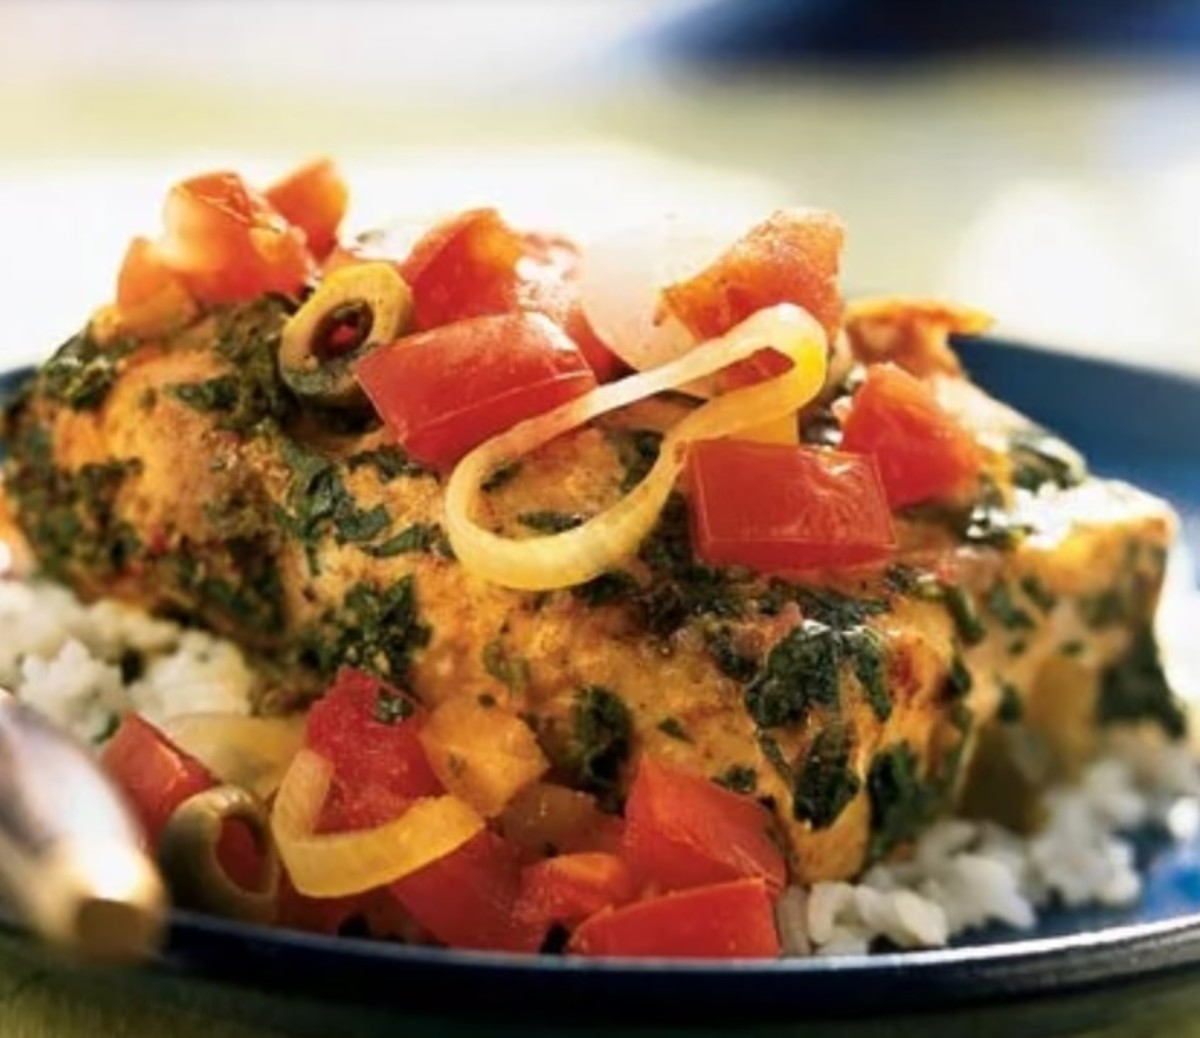 Fish tagine with preserved lemon and tomatoes